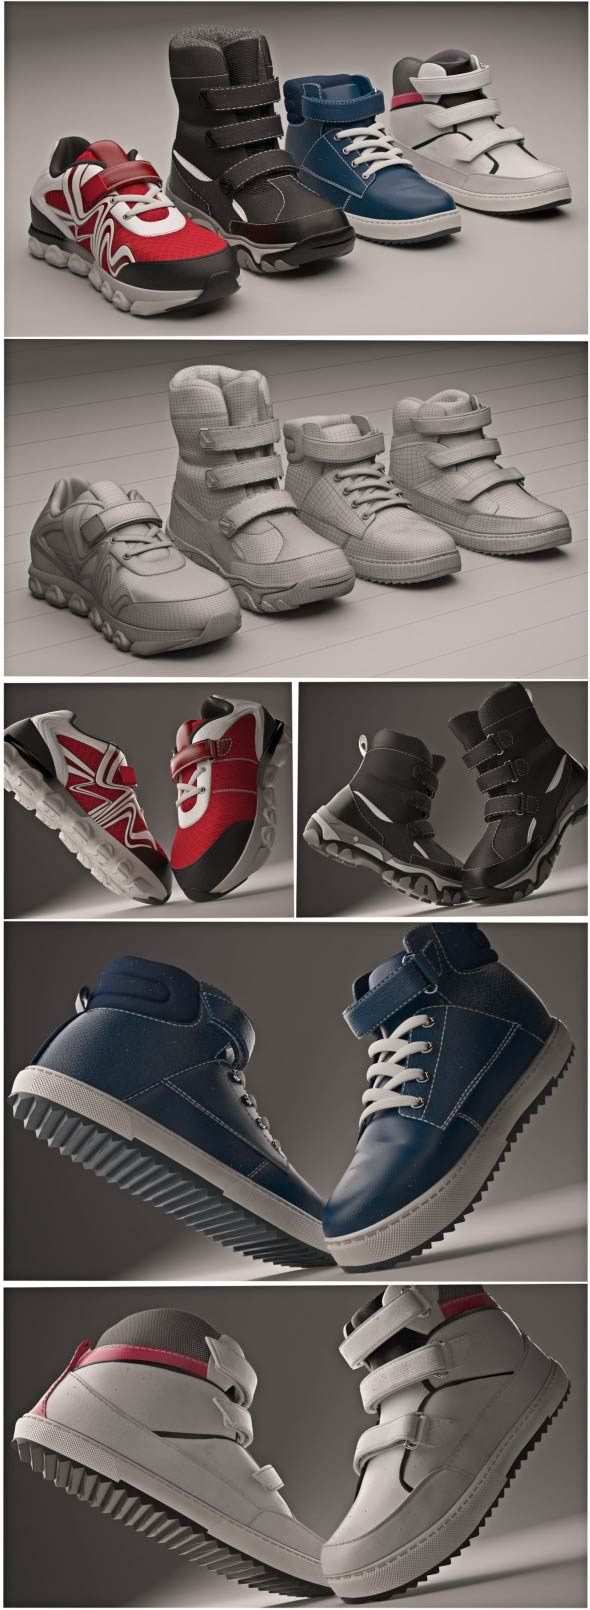 Footwear collection - 3DOcean Item for Sale